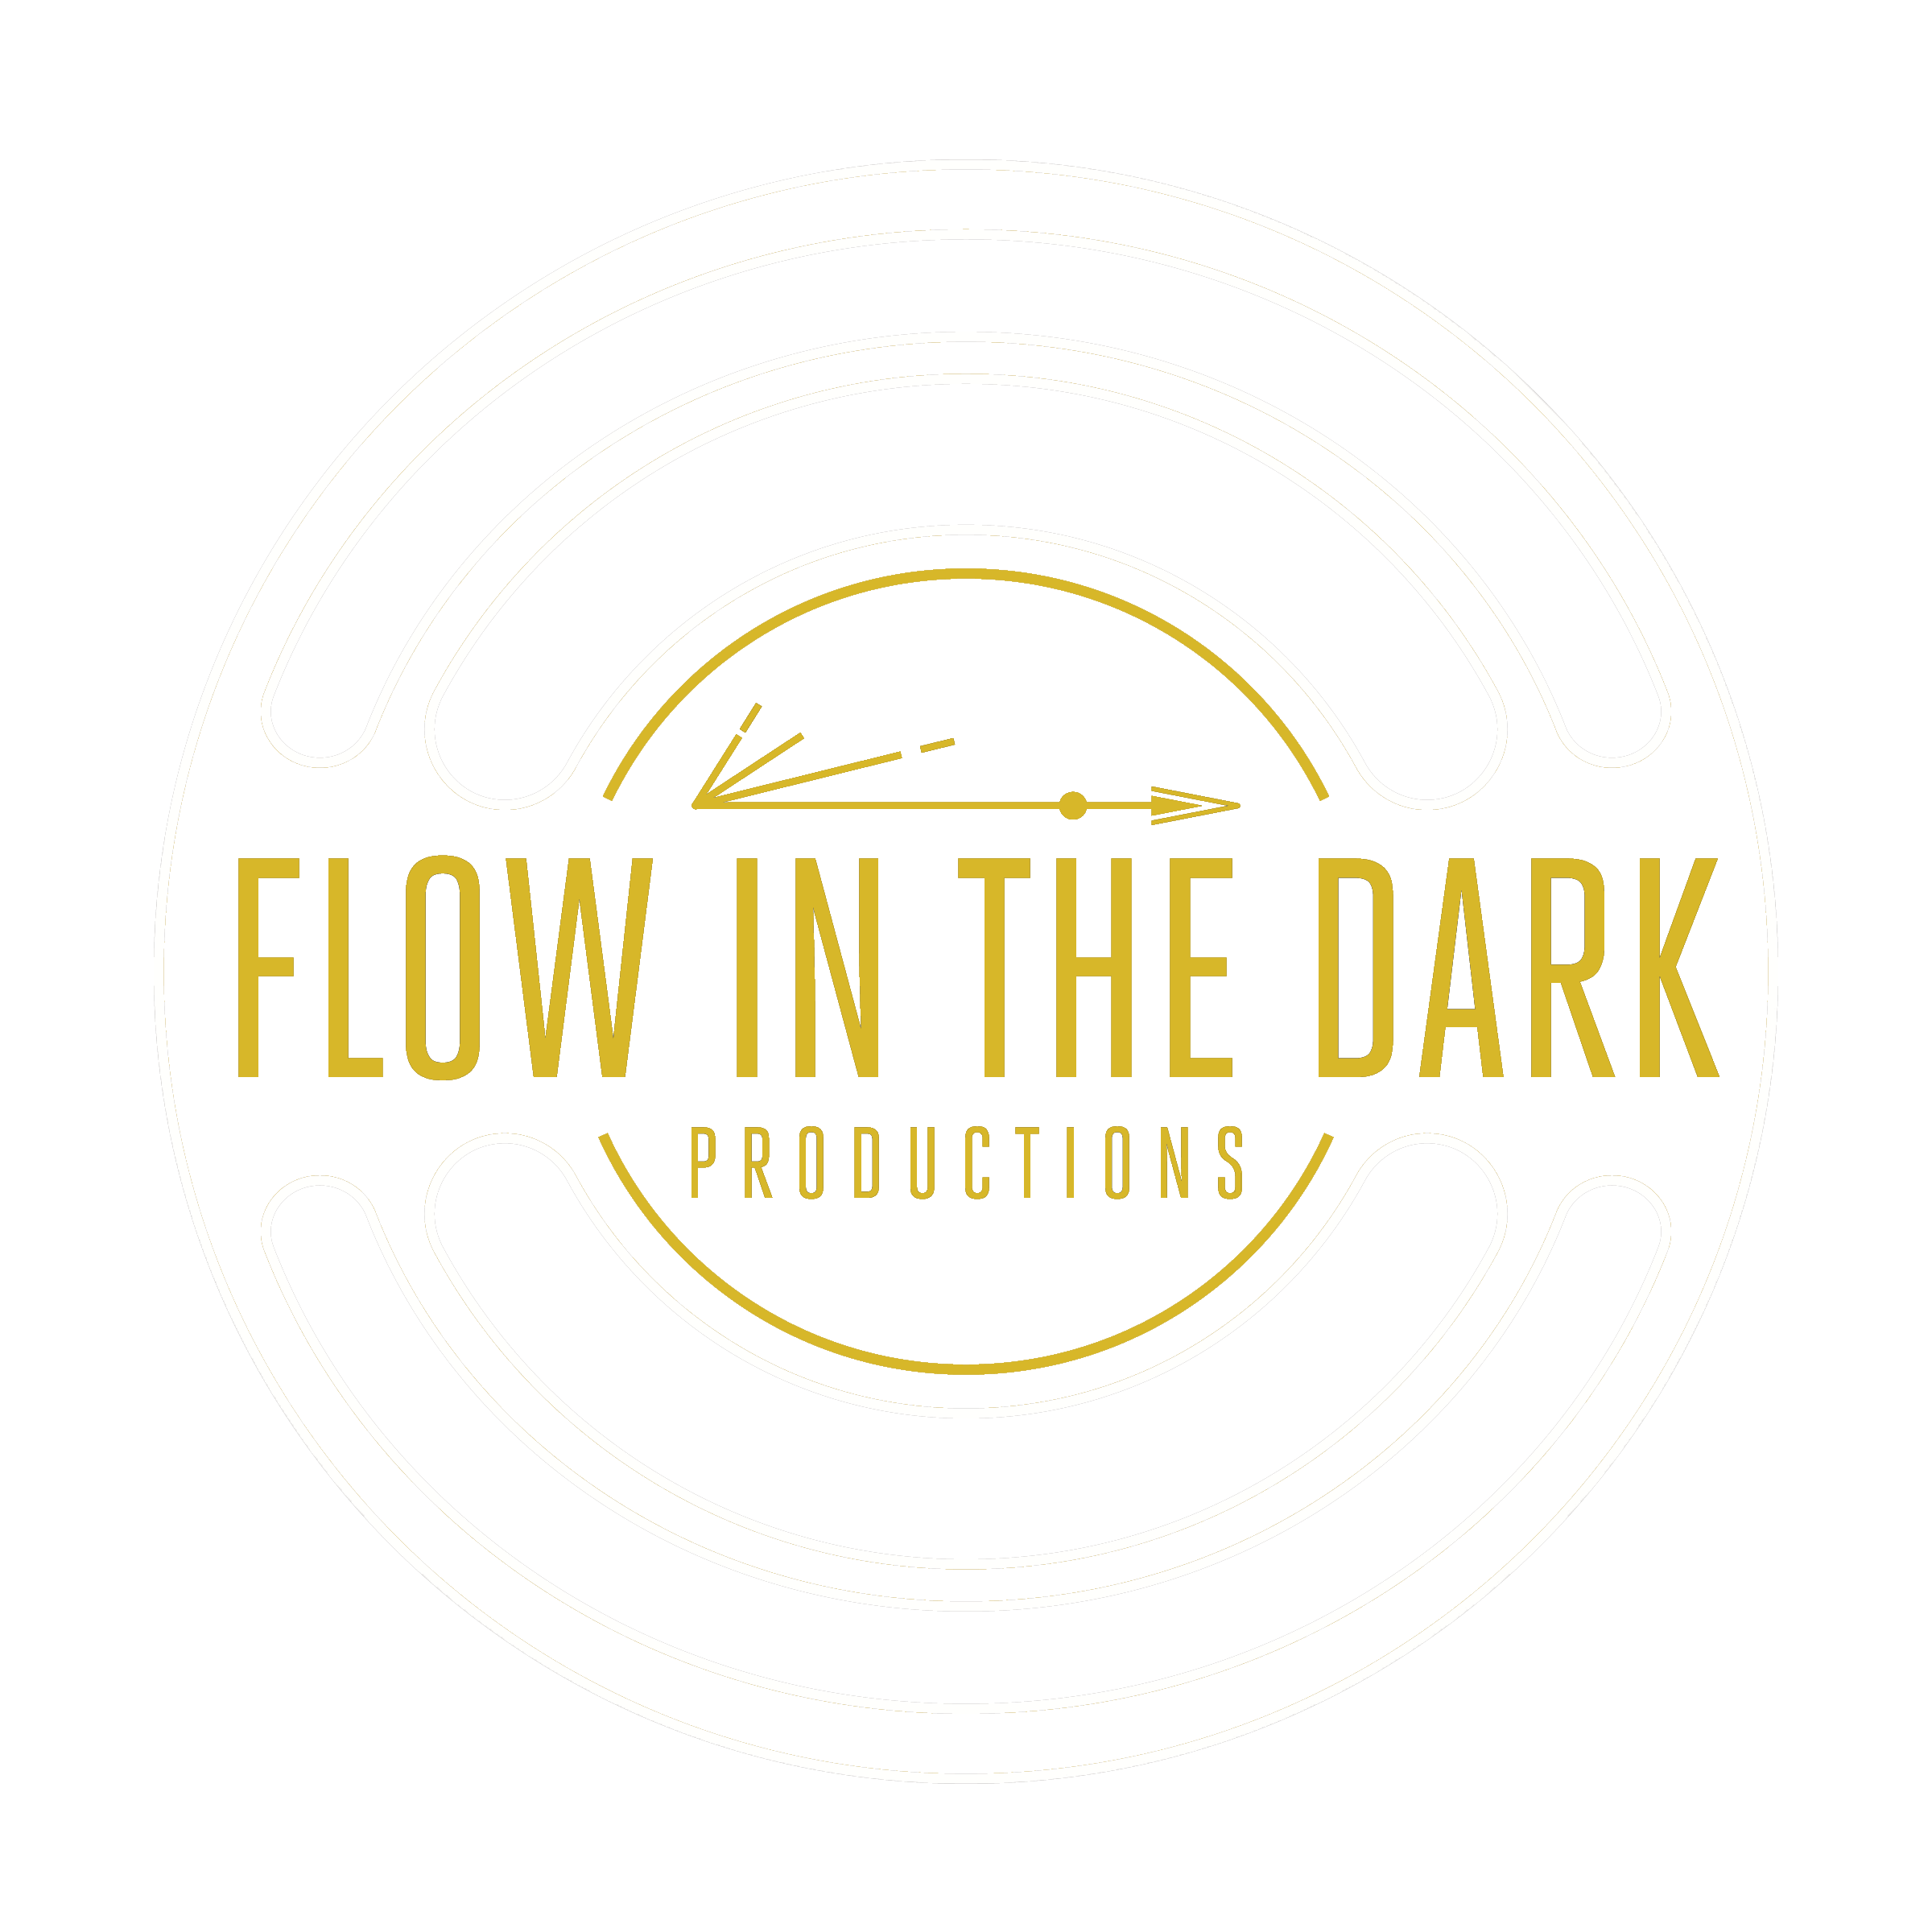 Flow in the Dark Productions